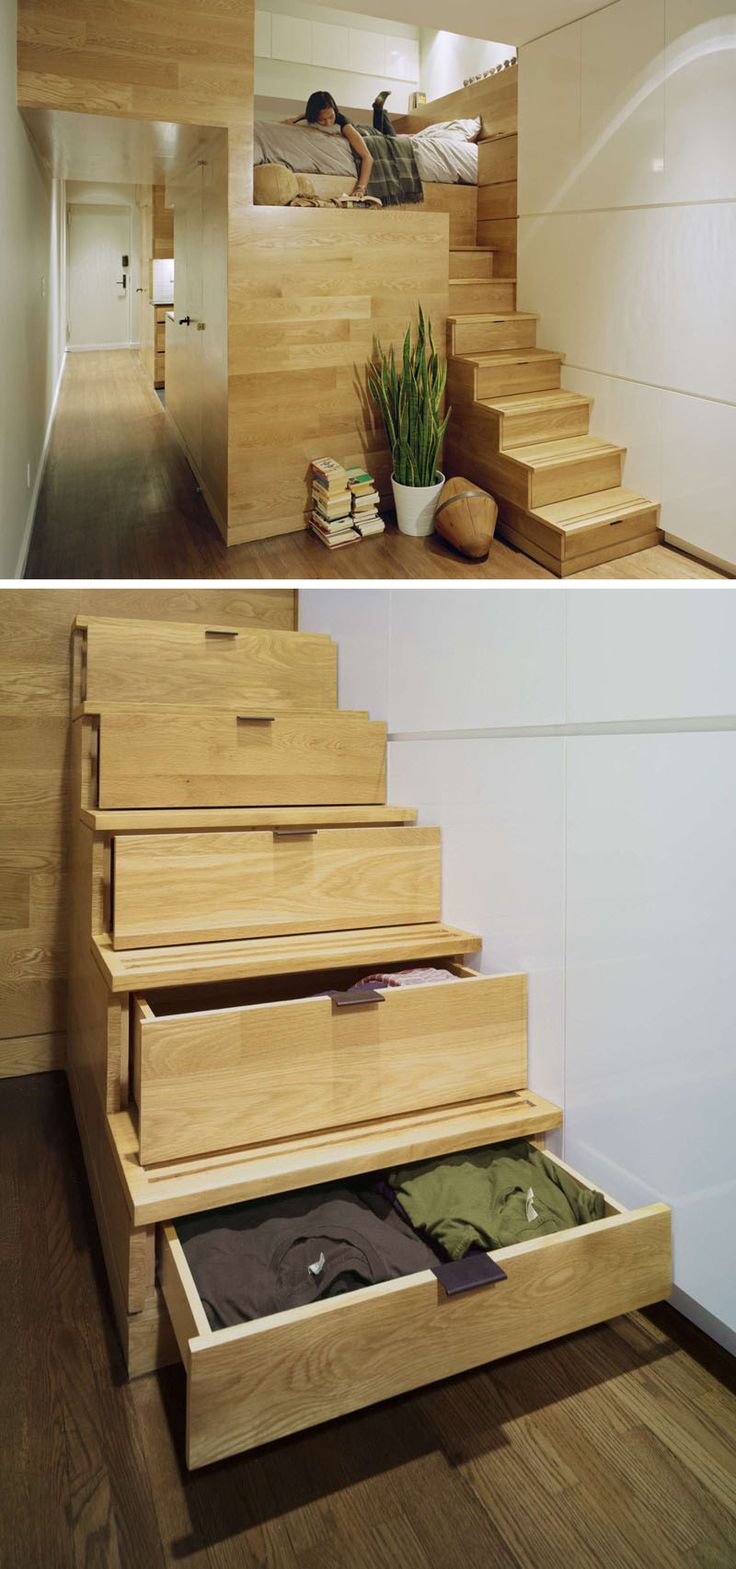 13 Stair Design Ideas For Small Spaces | The staircase leading to the loft bed in this apartment also doubles as clothing storage, taking care of two problems with one staircase.